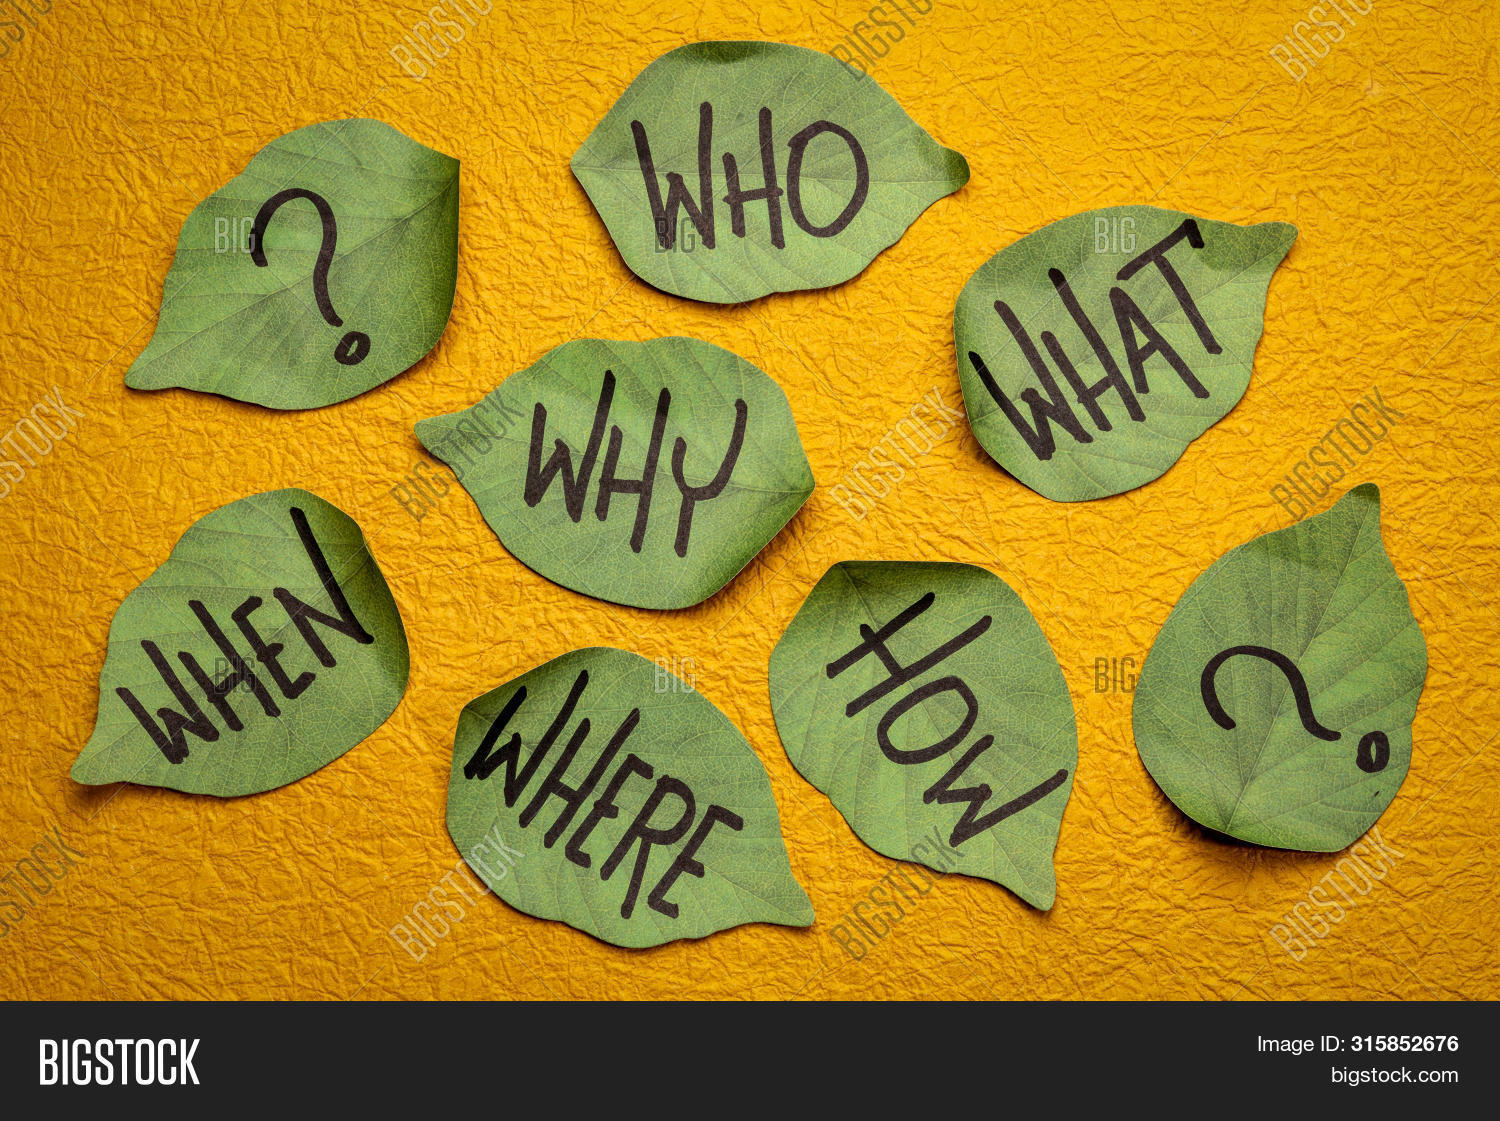 ask,brainstorm,brainstorming,business,concept,decision,decision making,education,green,handmade paper,handwriting,how question,leaf,leaf shaped,note,paper,plan,question mark,reminder,reminder note,sticky note,what question,when question,who,why,yellow